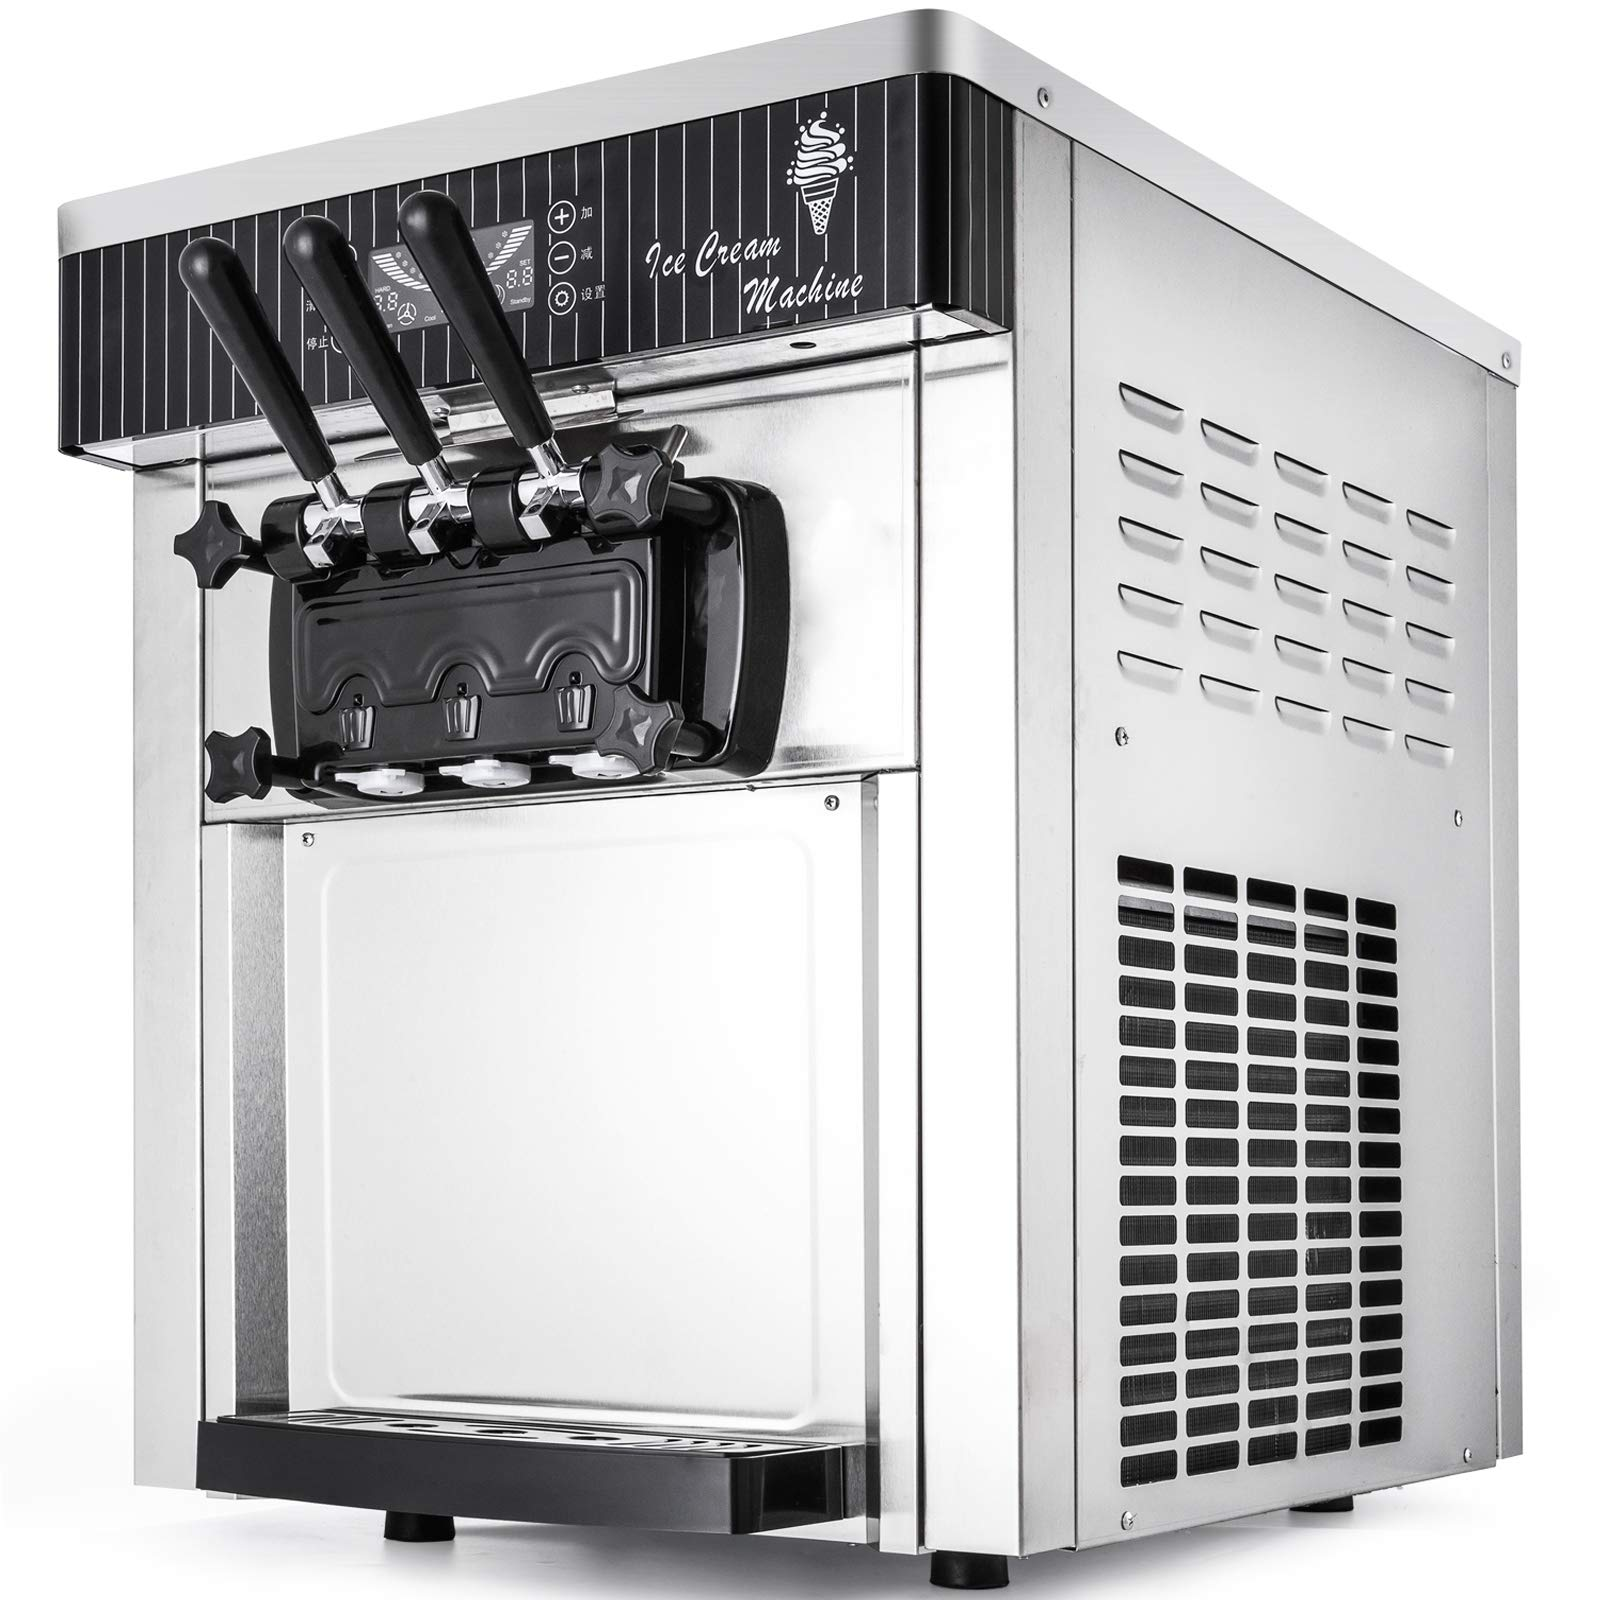 VEVOR 2200W Commercial Soft Ice Cream Machine 3 Flavors 5.3-7.4Gallons/H Auto Clean LED Panel Perfect for Restaurants Snack Bar supermarkets, 2200W, Sliver/Desktop by VEVOR (Image #1)